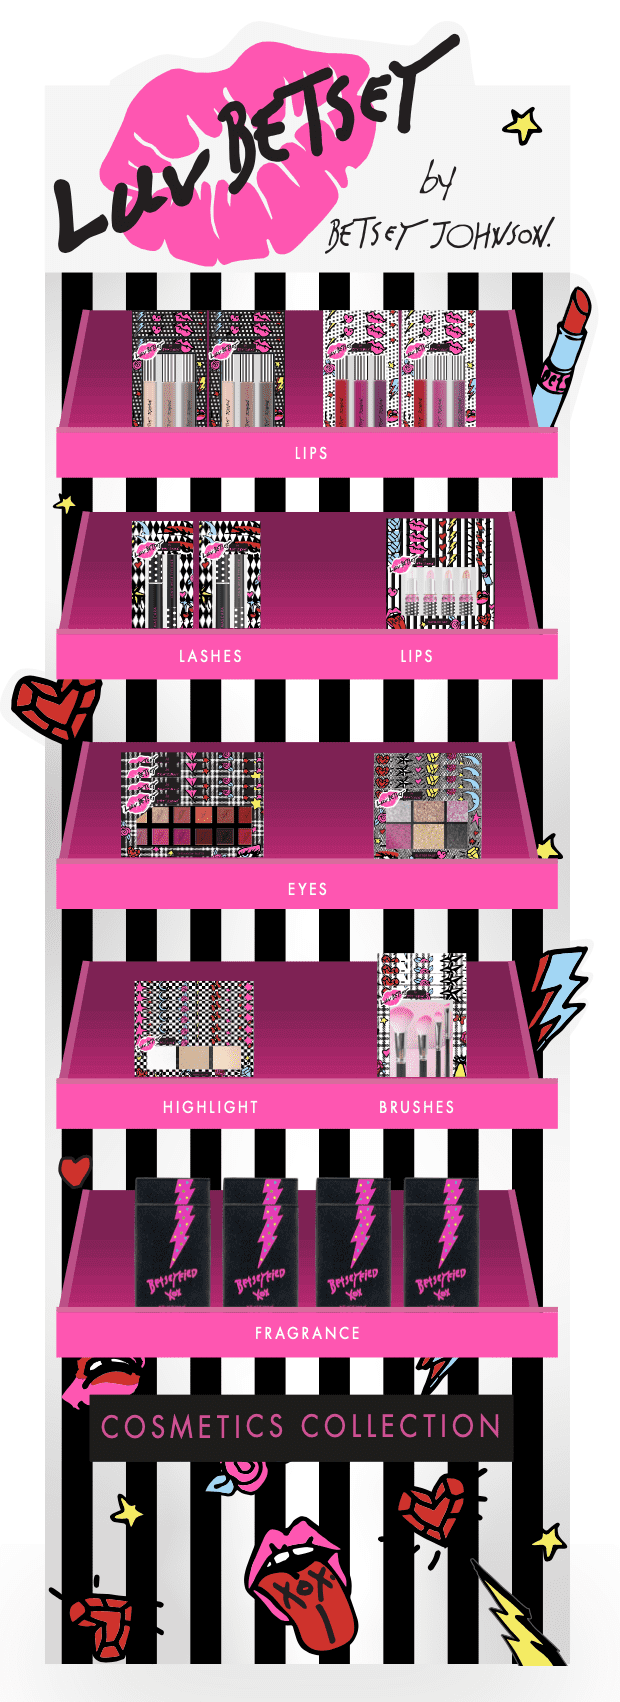 LUV BETSEY BY BETSEY JOHNSON COSMETICS COLLECTION